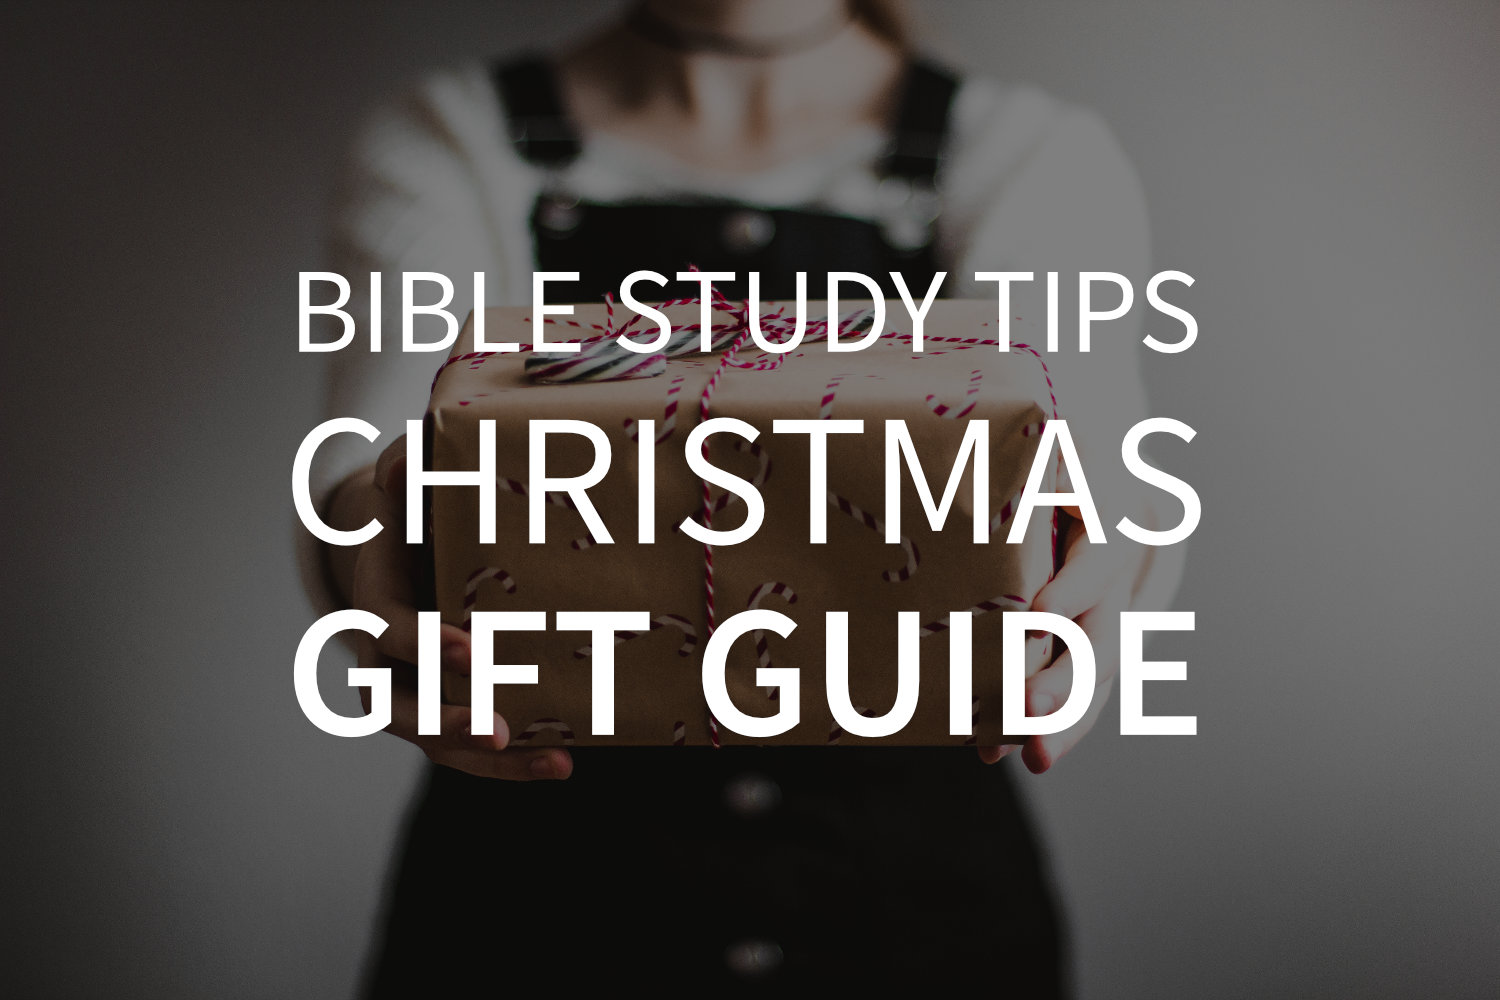 Bible Study Tips Christmas Gift Guide